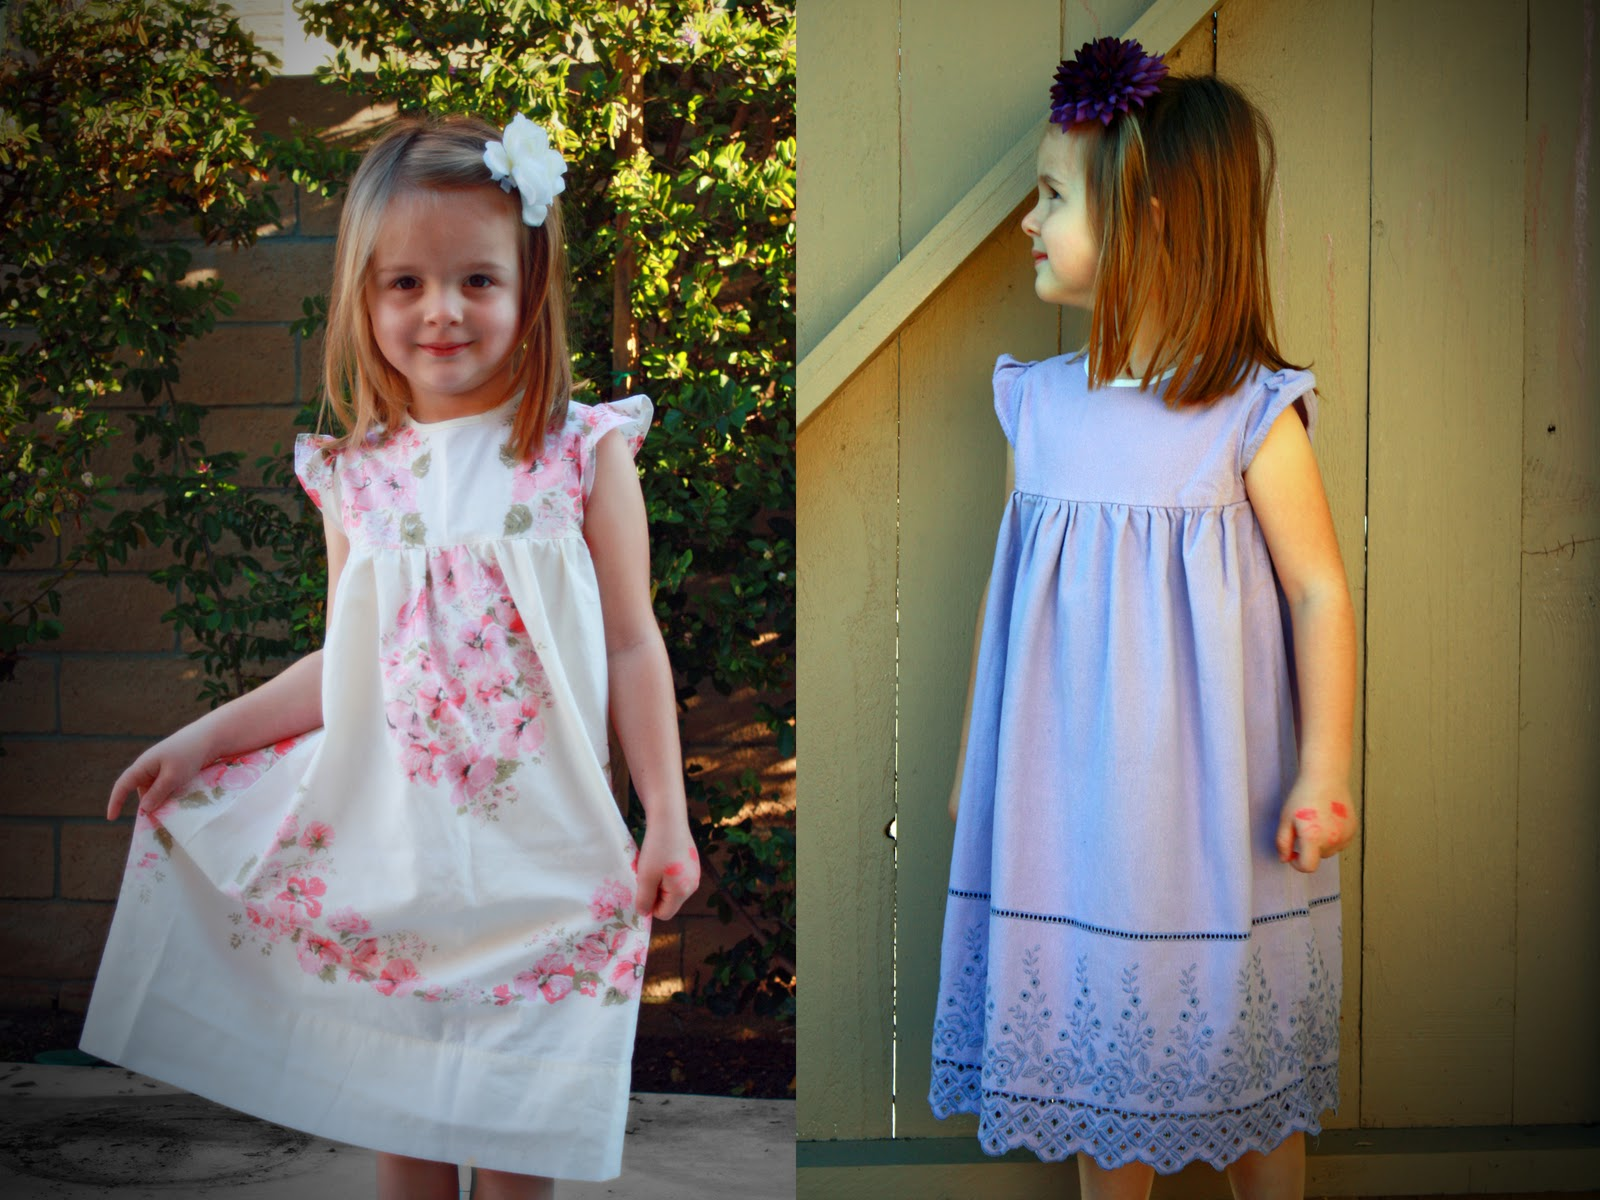 Diy Pillowcase Nightgown: DIY Pillowcase Nightgowns   iCandy handmade,